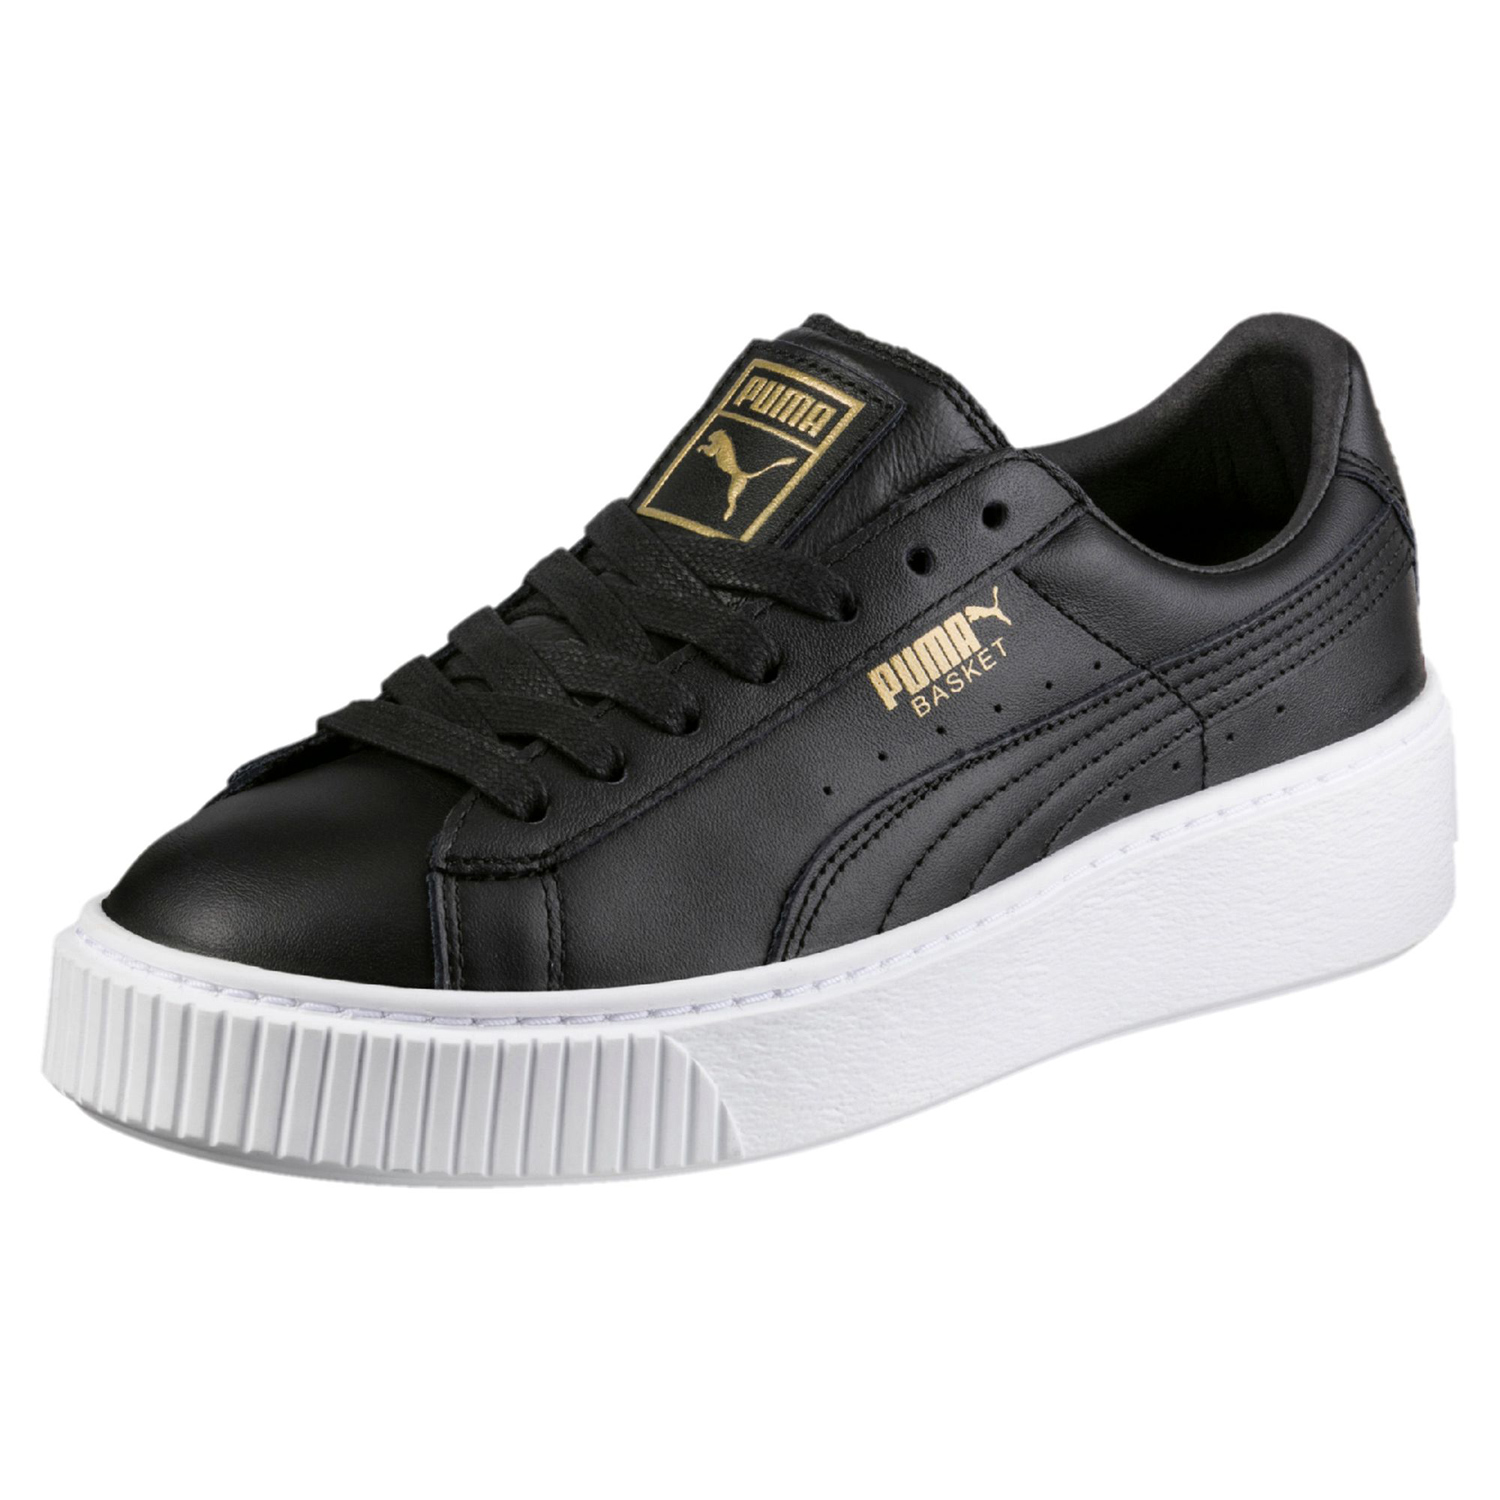 puma basket platform core damen sneaker damen schuhe sneaker. Black Bedroom Furniture Sets. Home Design Ideas